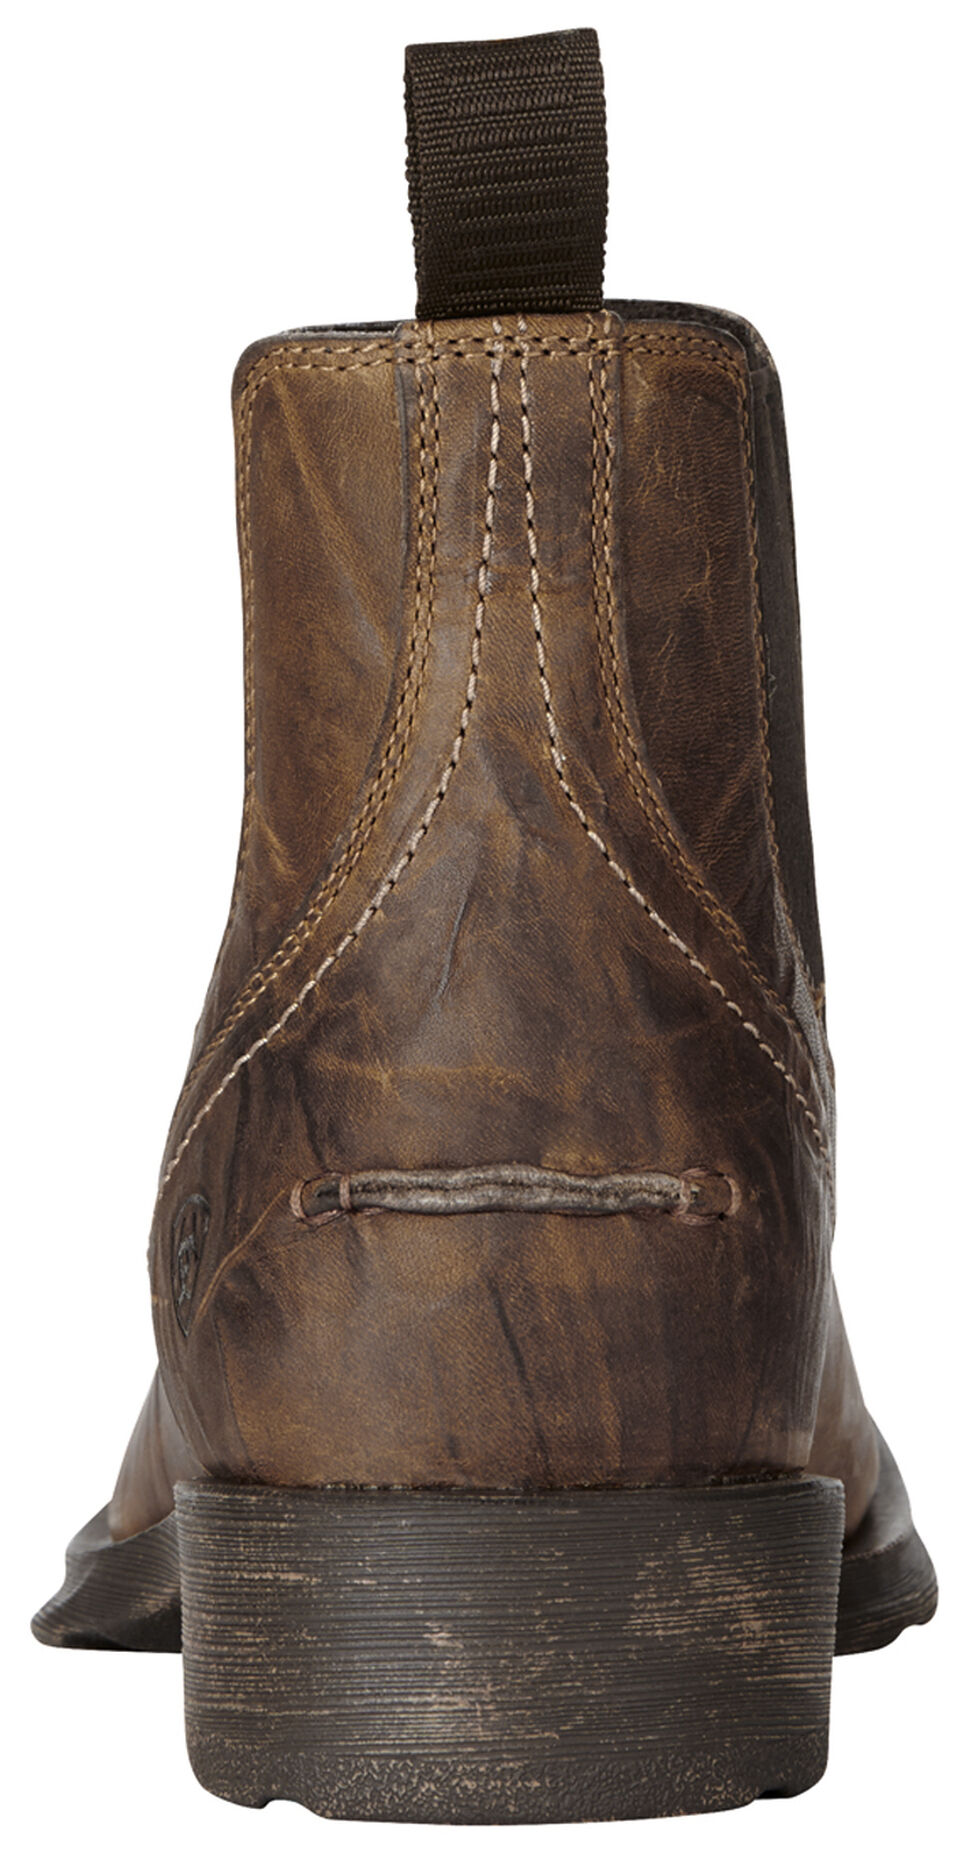 Ariat Men's Brown Midtown Rambler Boots - Square Toe, Light Brown, hi-res